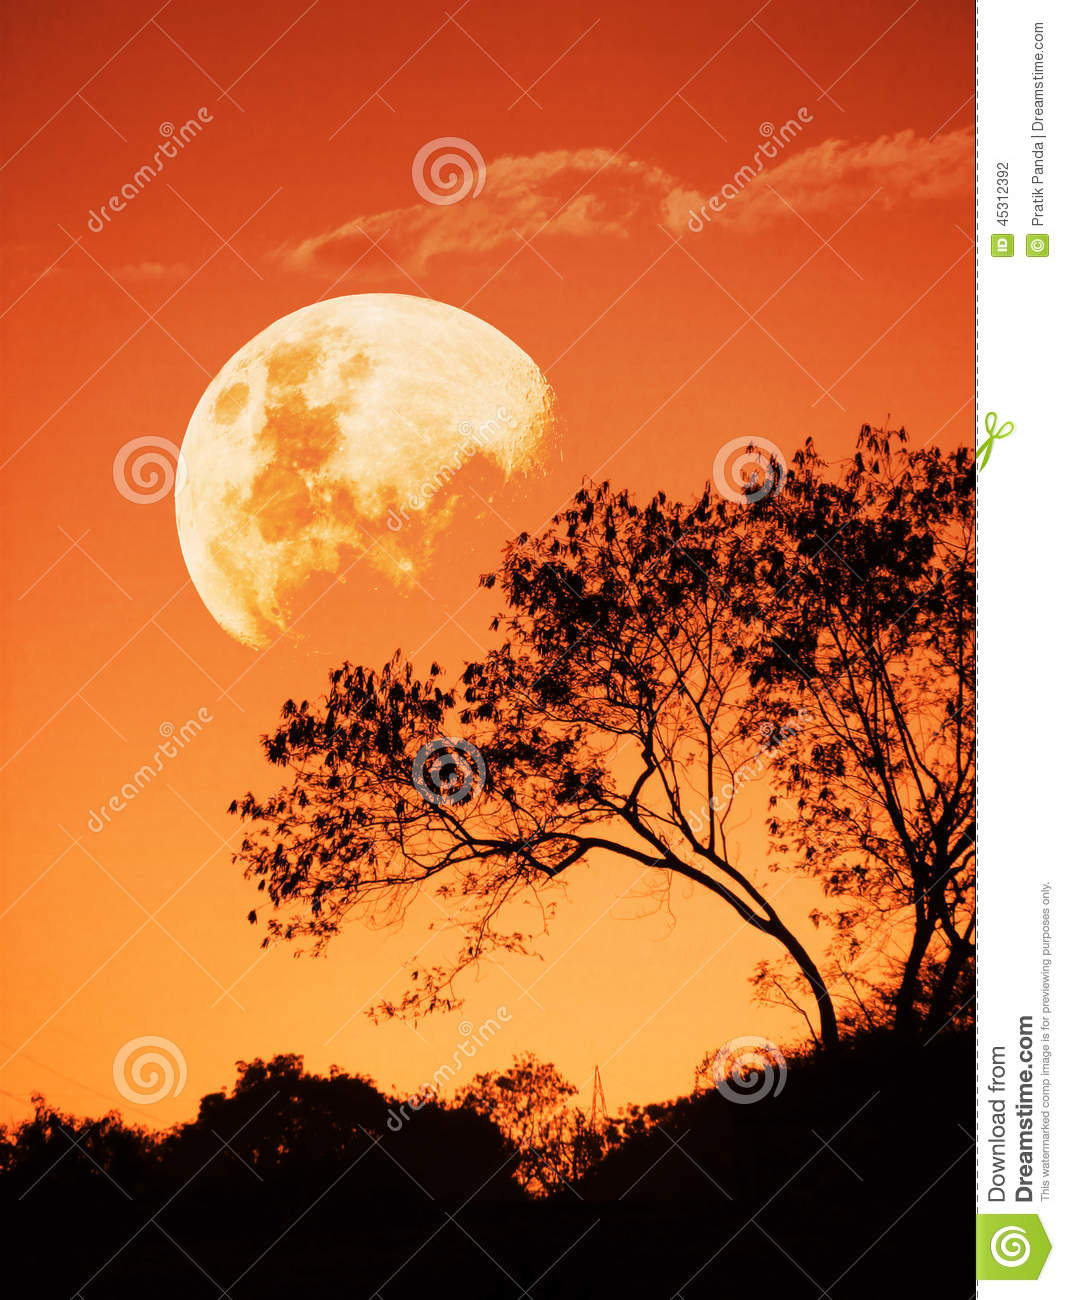 Sunset and the rising moon